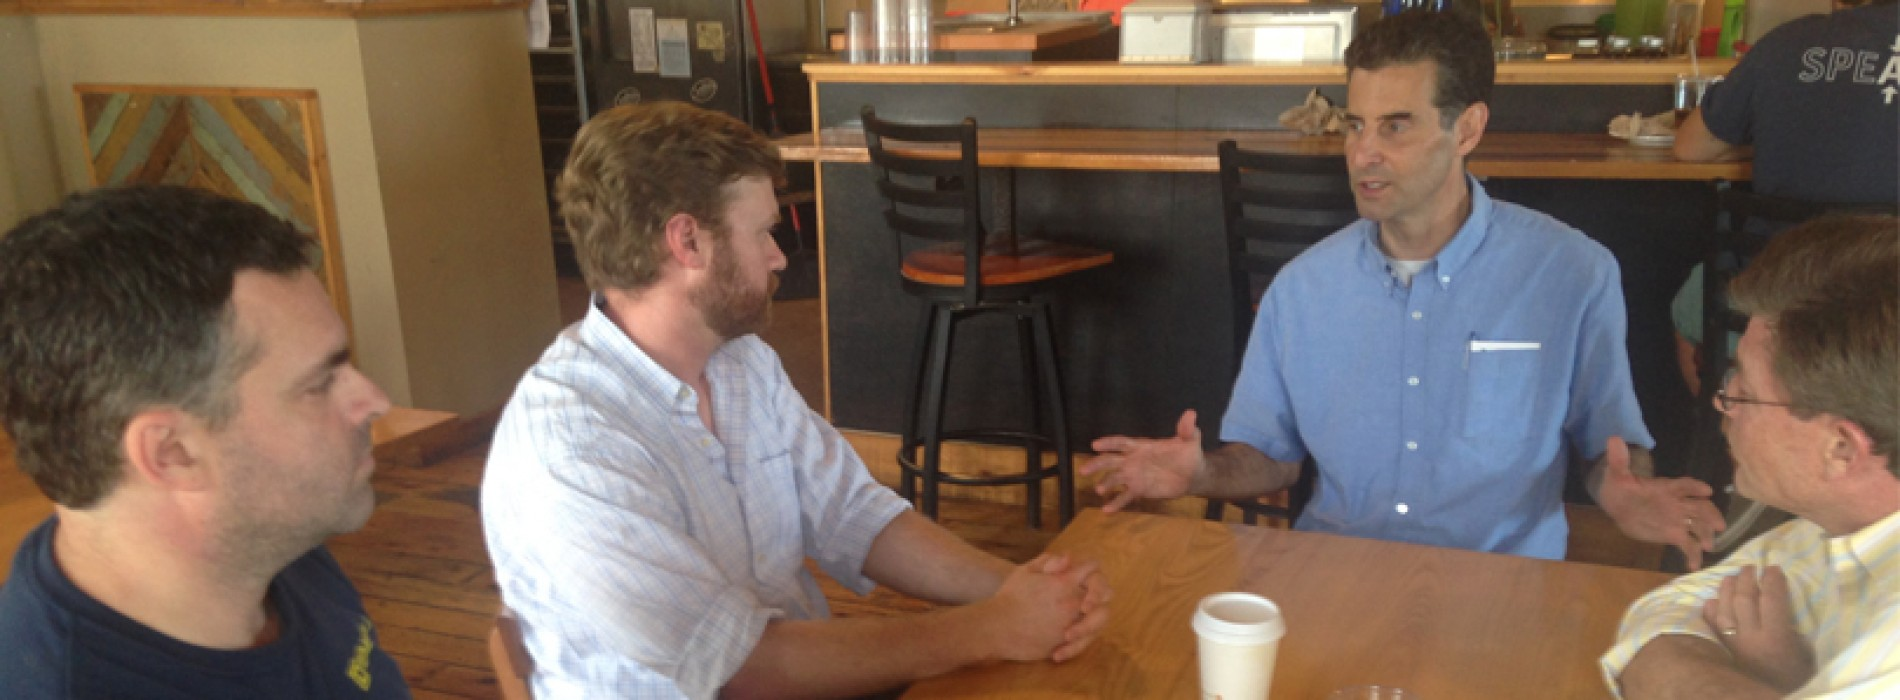 Maine small business owners discuss dangers of money in politics with congressional leader